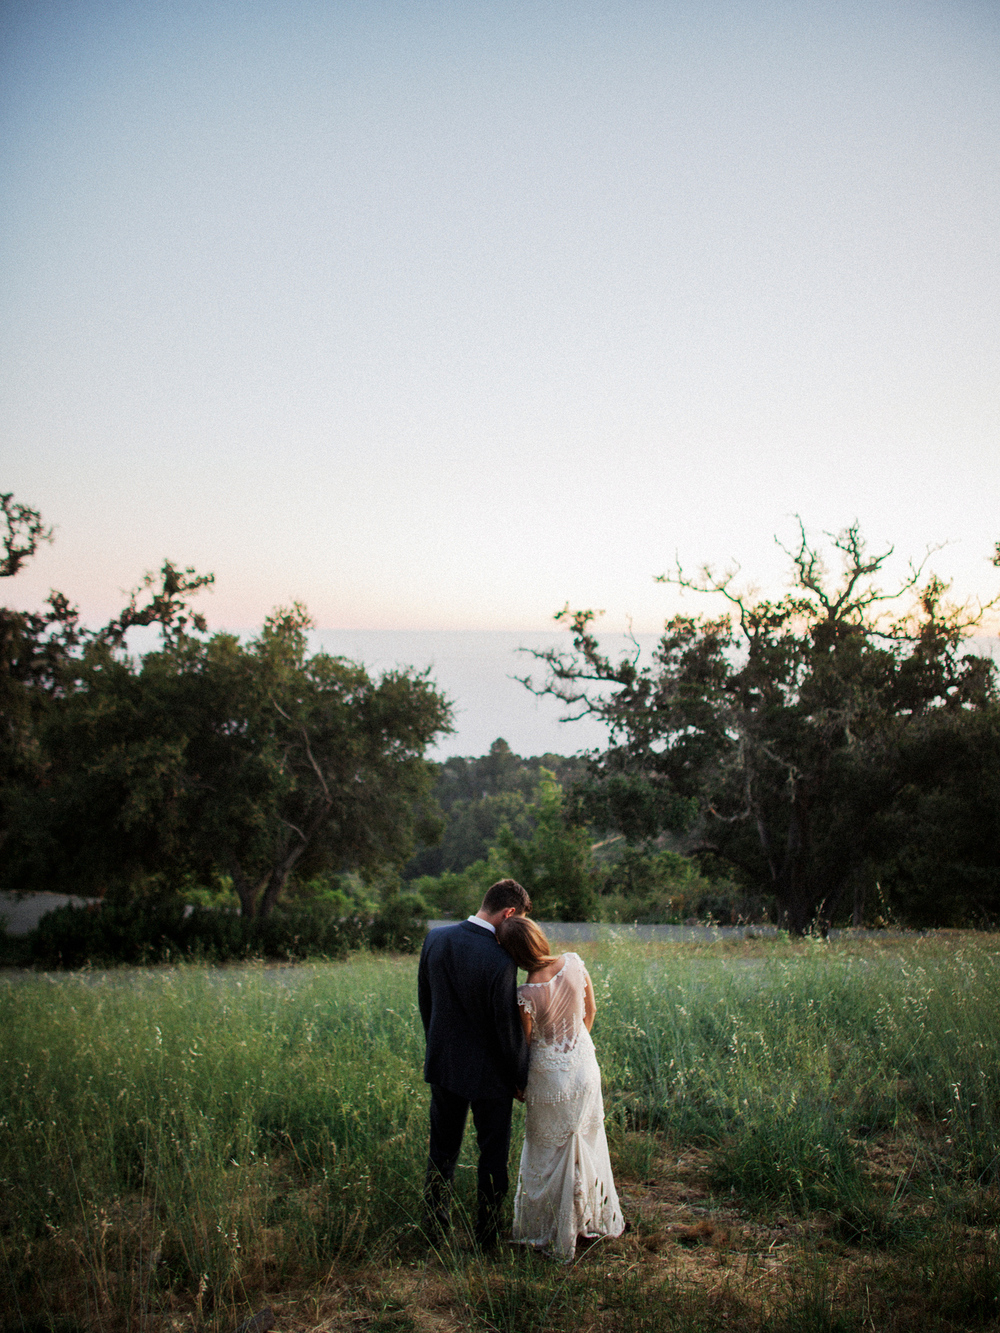 keblog-big-sur-wedding-ryan-flynn-photography-0081.JPG